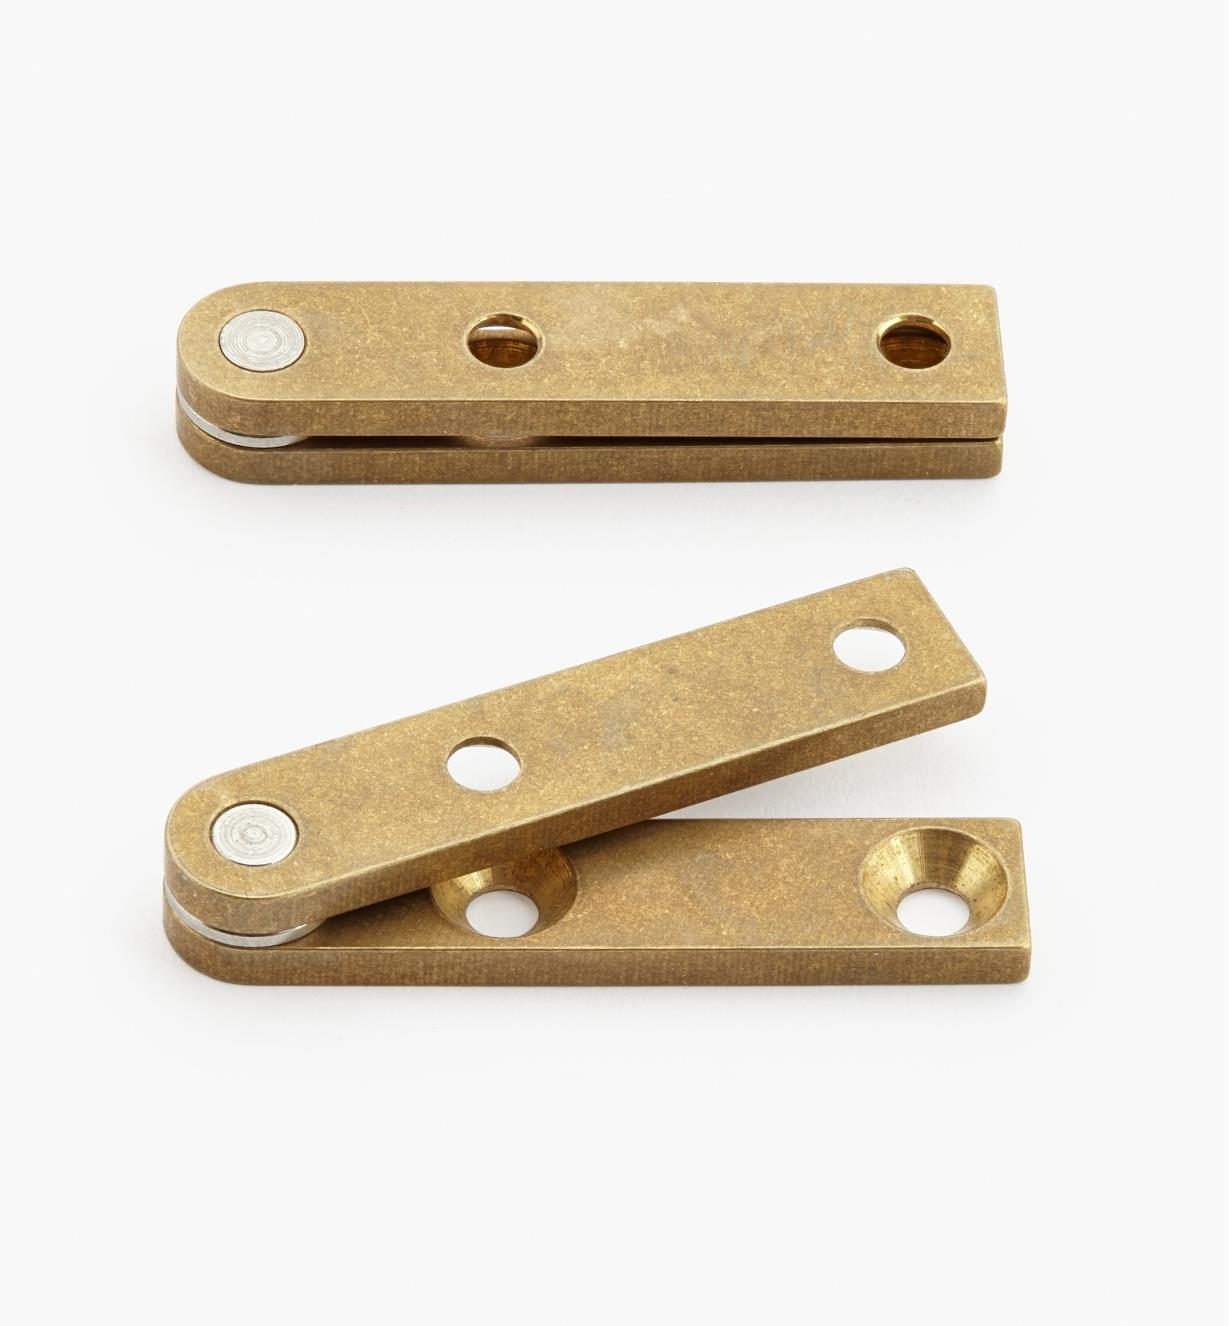 "05H0105 - 5/16"" x 1 1/2"" x 3/32"", Brass Straight Knife Hinges, pair"